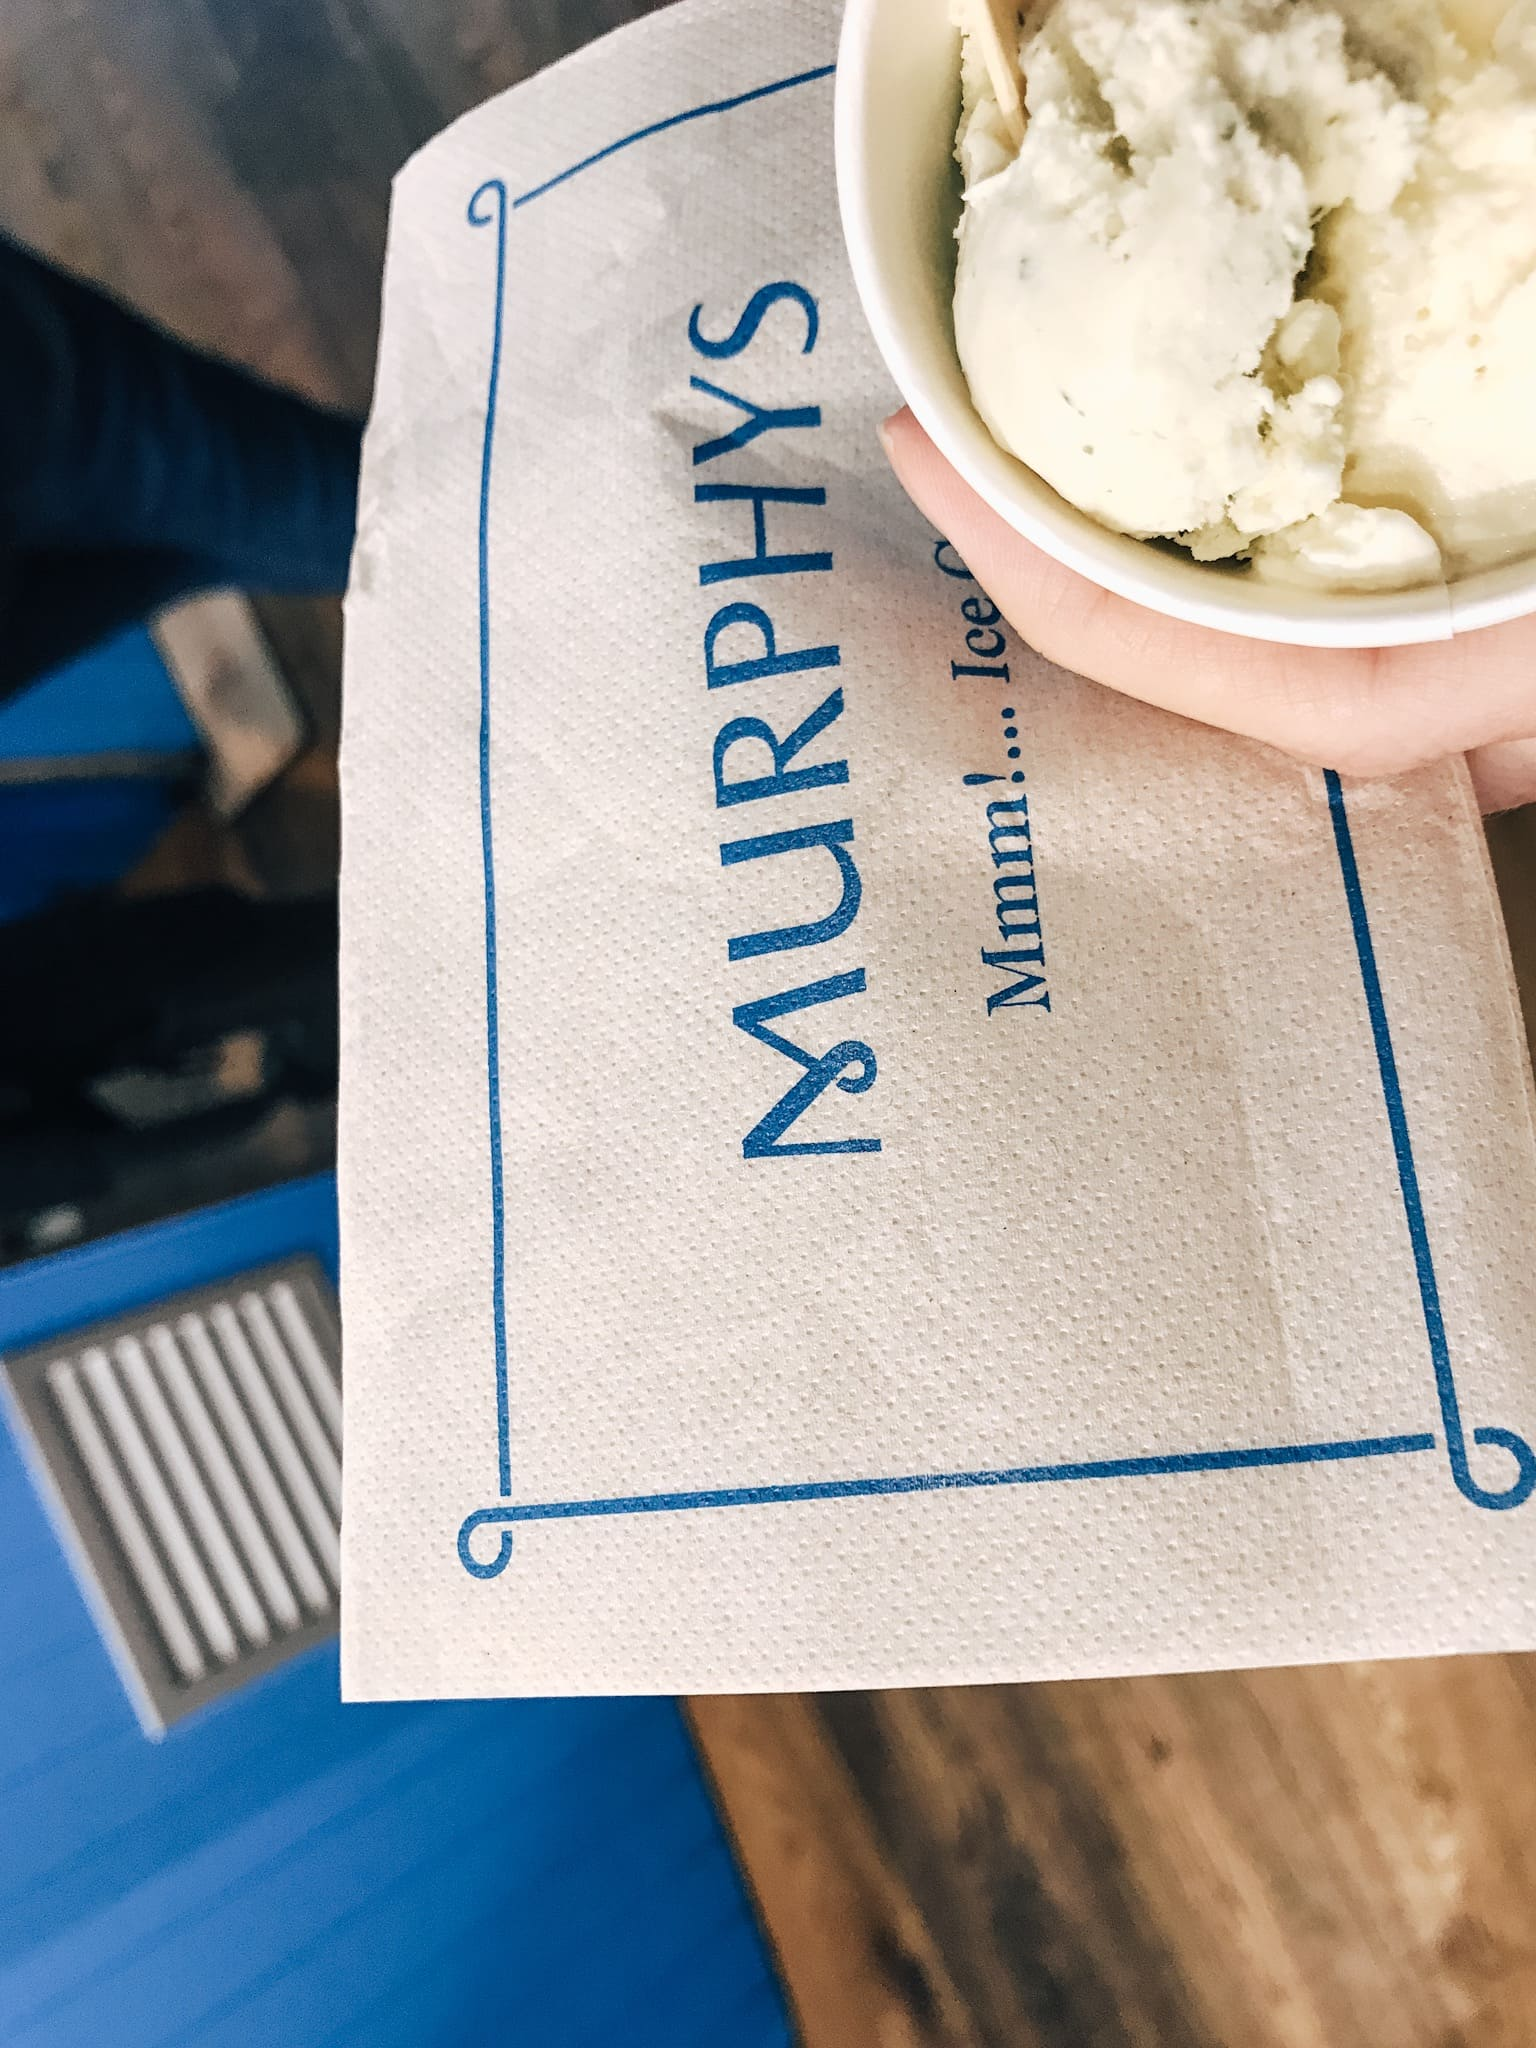 Murpheys Ice Cream